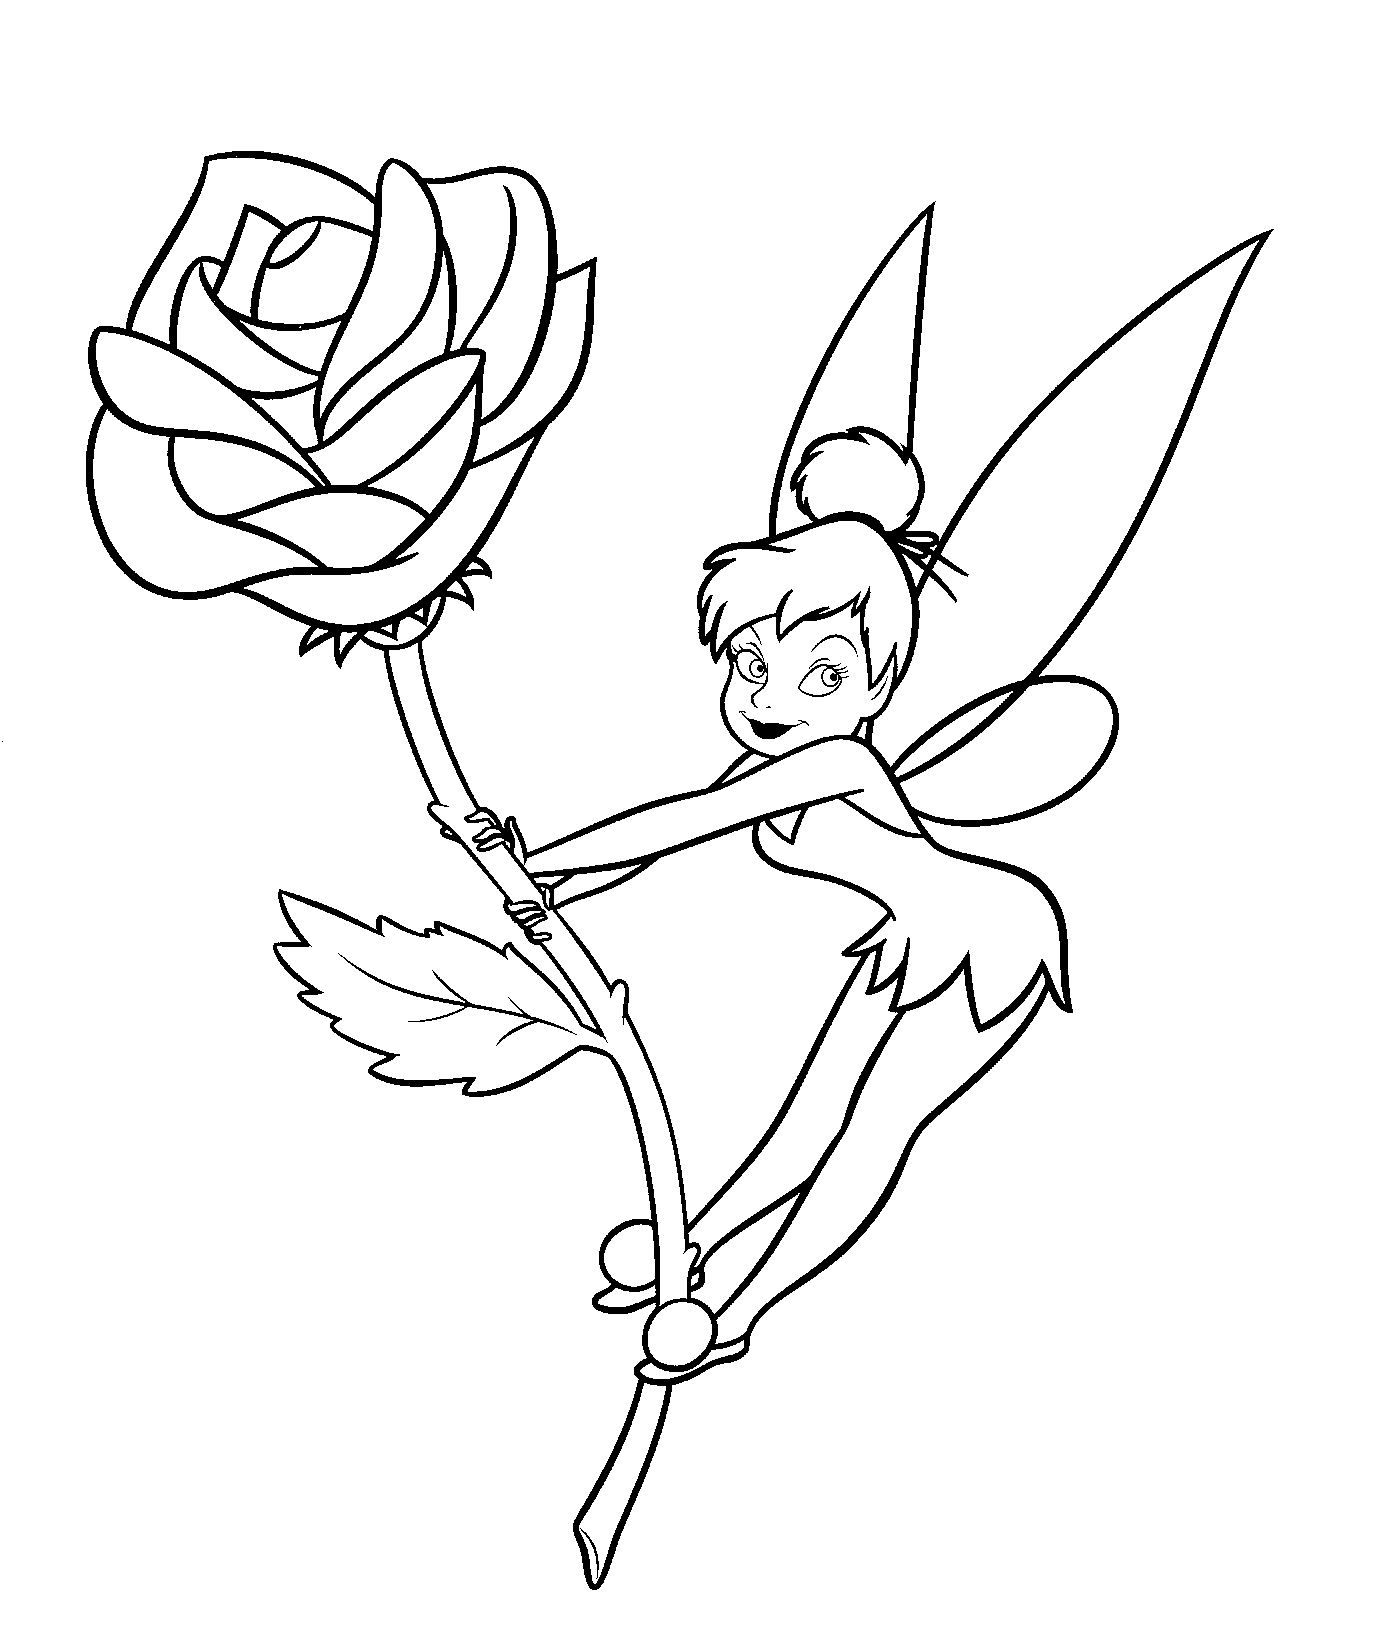 tinkerbell coloring page mildred patricia baena coloring pages tinkerbell tinkerbell page coloring